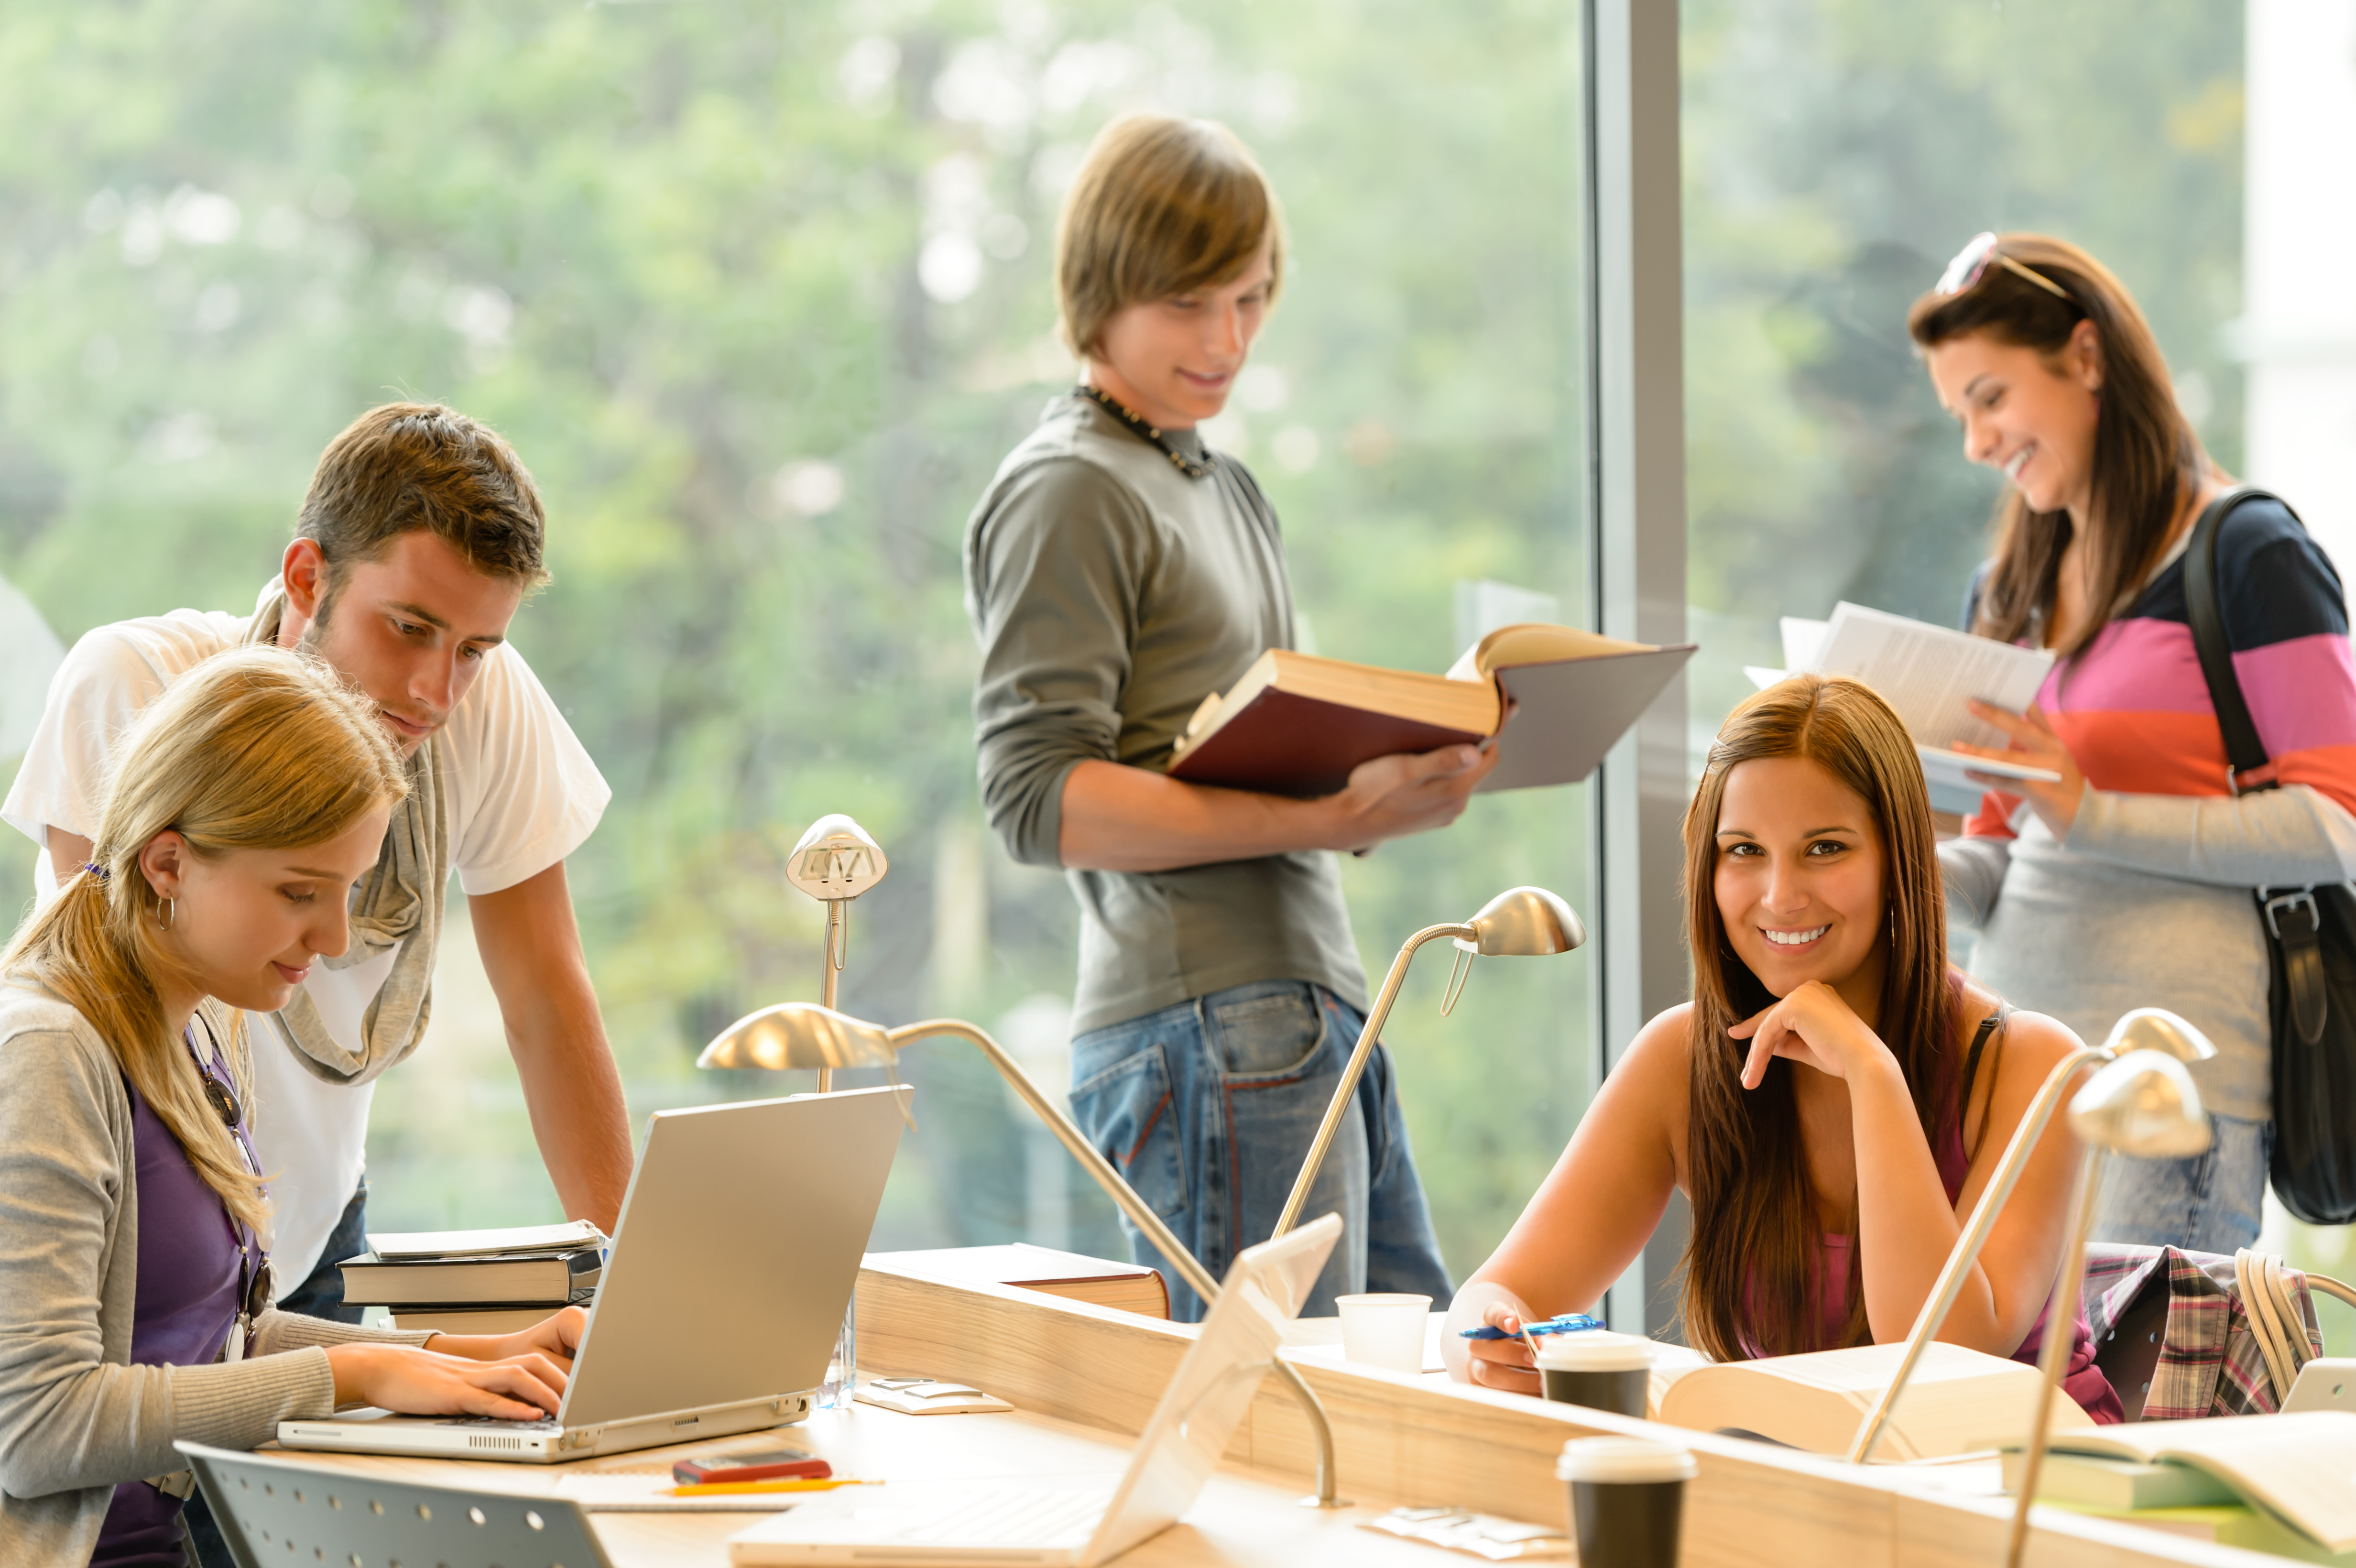 university coursework writing The open university offers a range of degree courses and modules in english literature and creative writing we will also offer an ma in creative writing from 2016, as well as our existing masters in english.